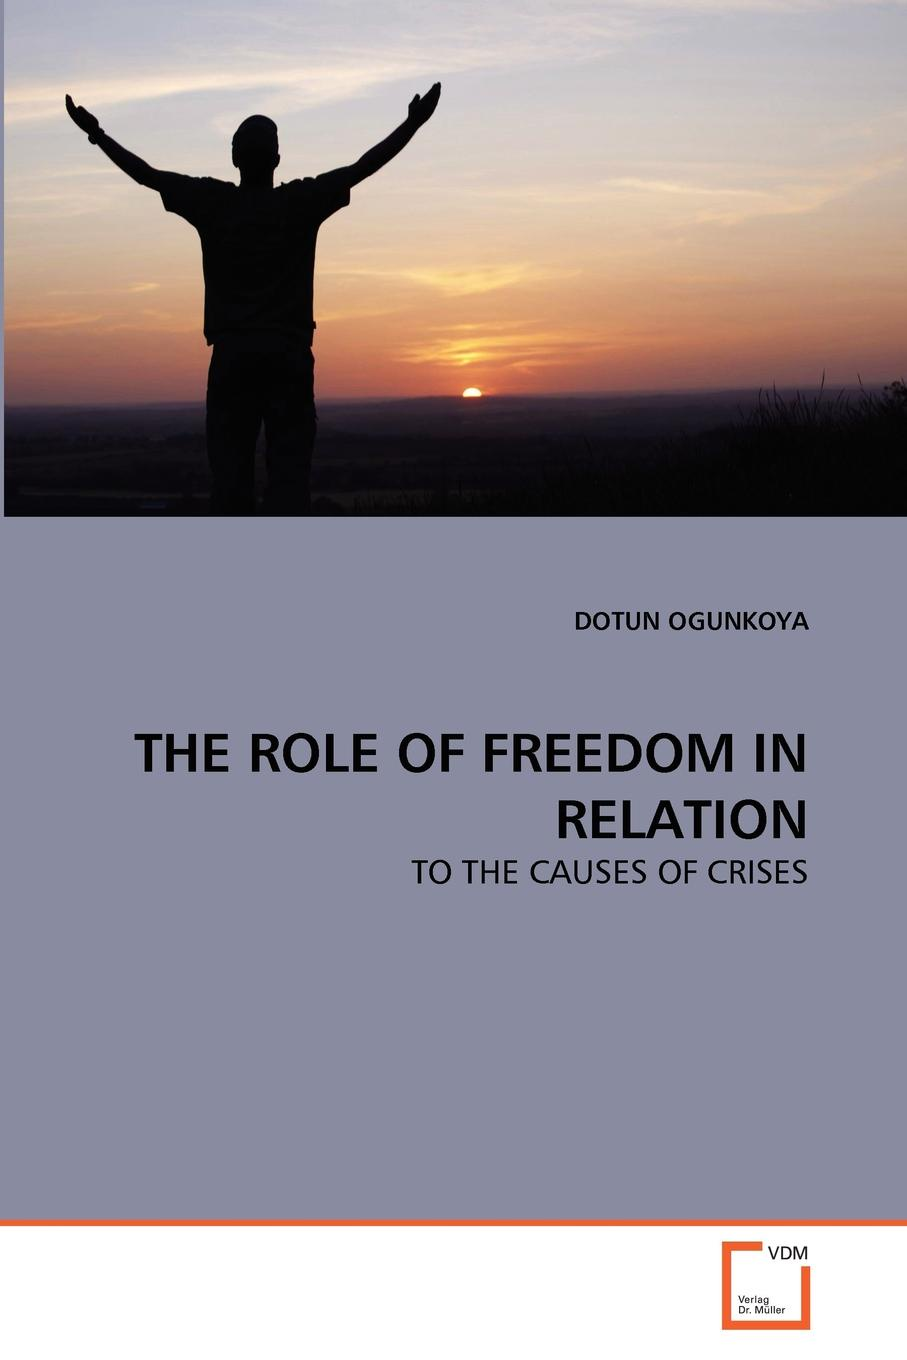 DOTUN OGUNKOYA THE ROLE OF FREEDOM IN RELATION a micro level analysis of the effects of multiple crises